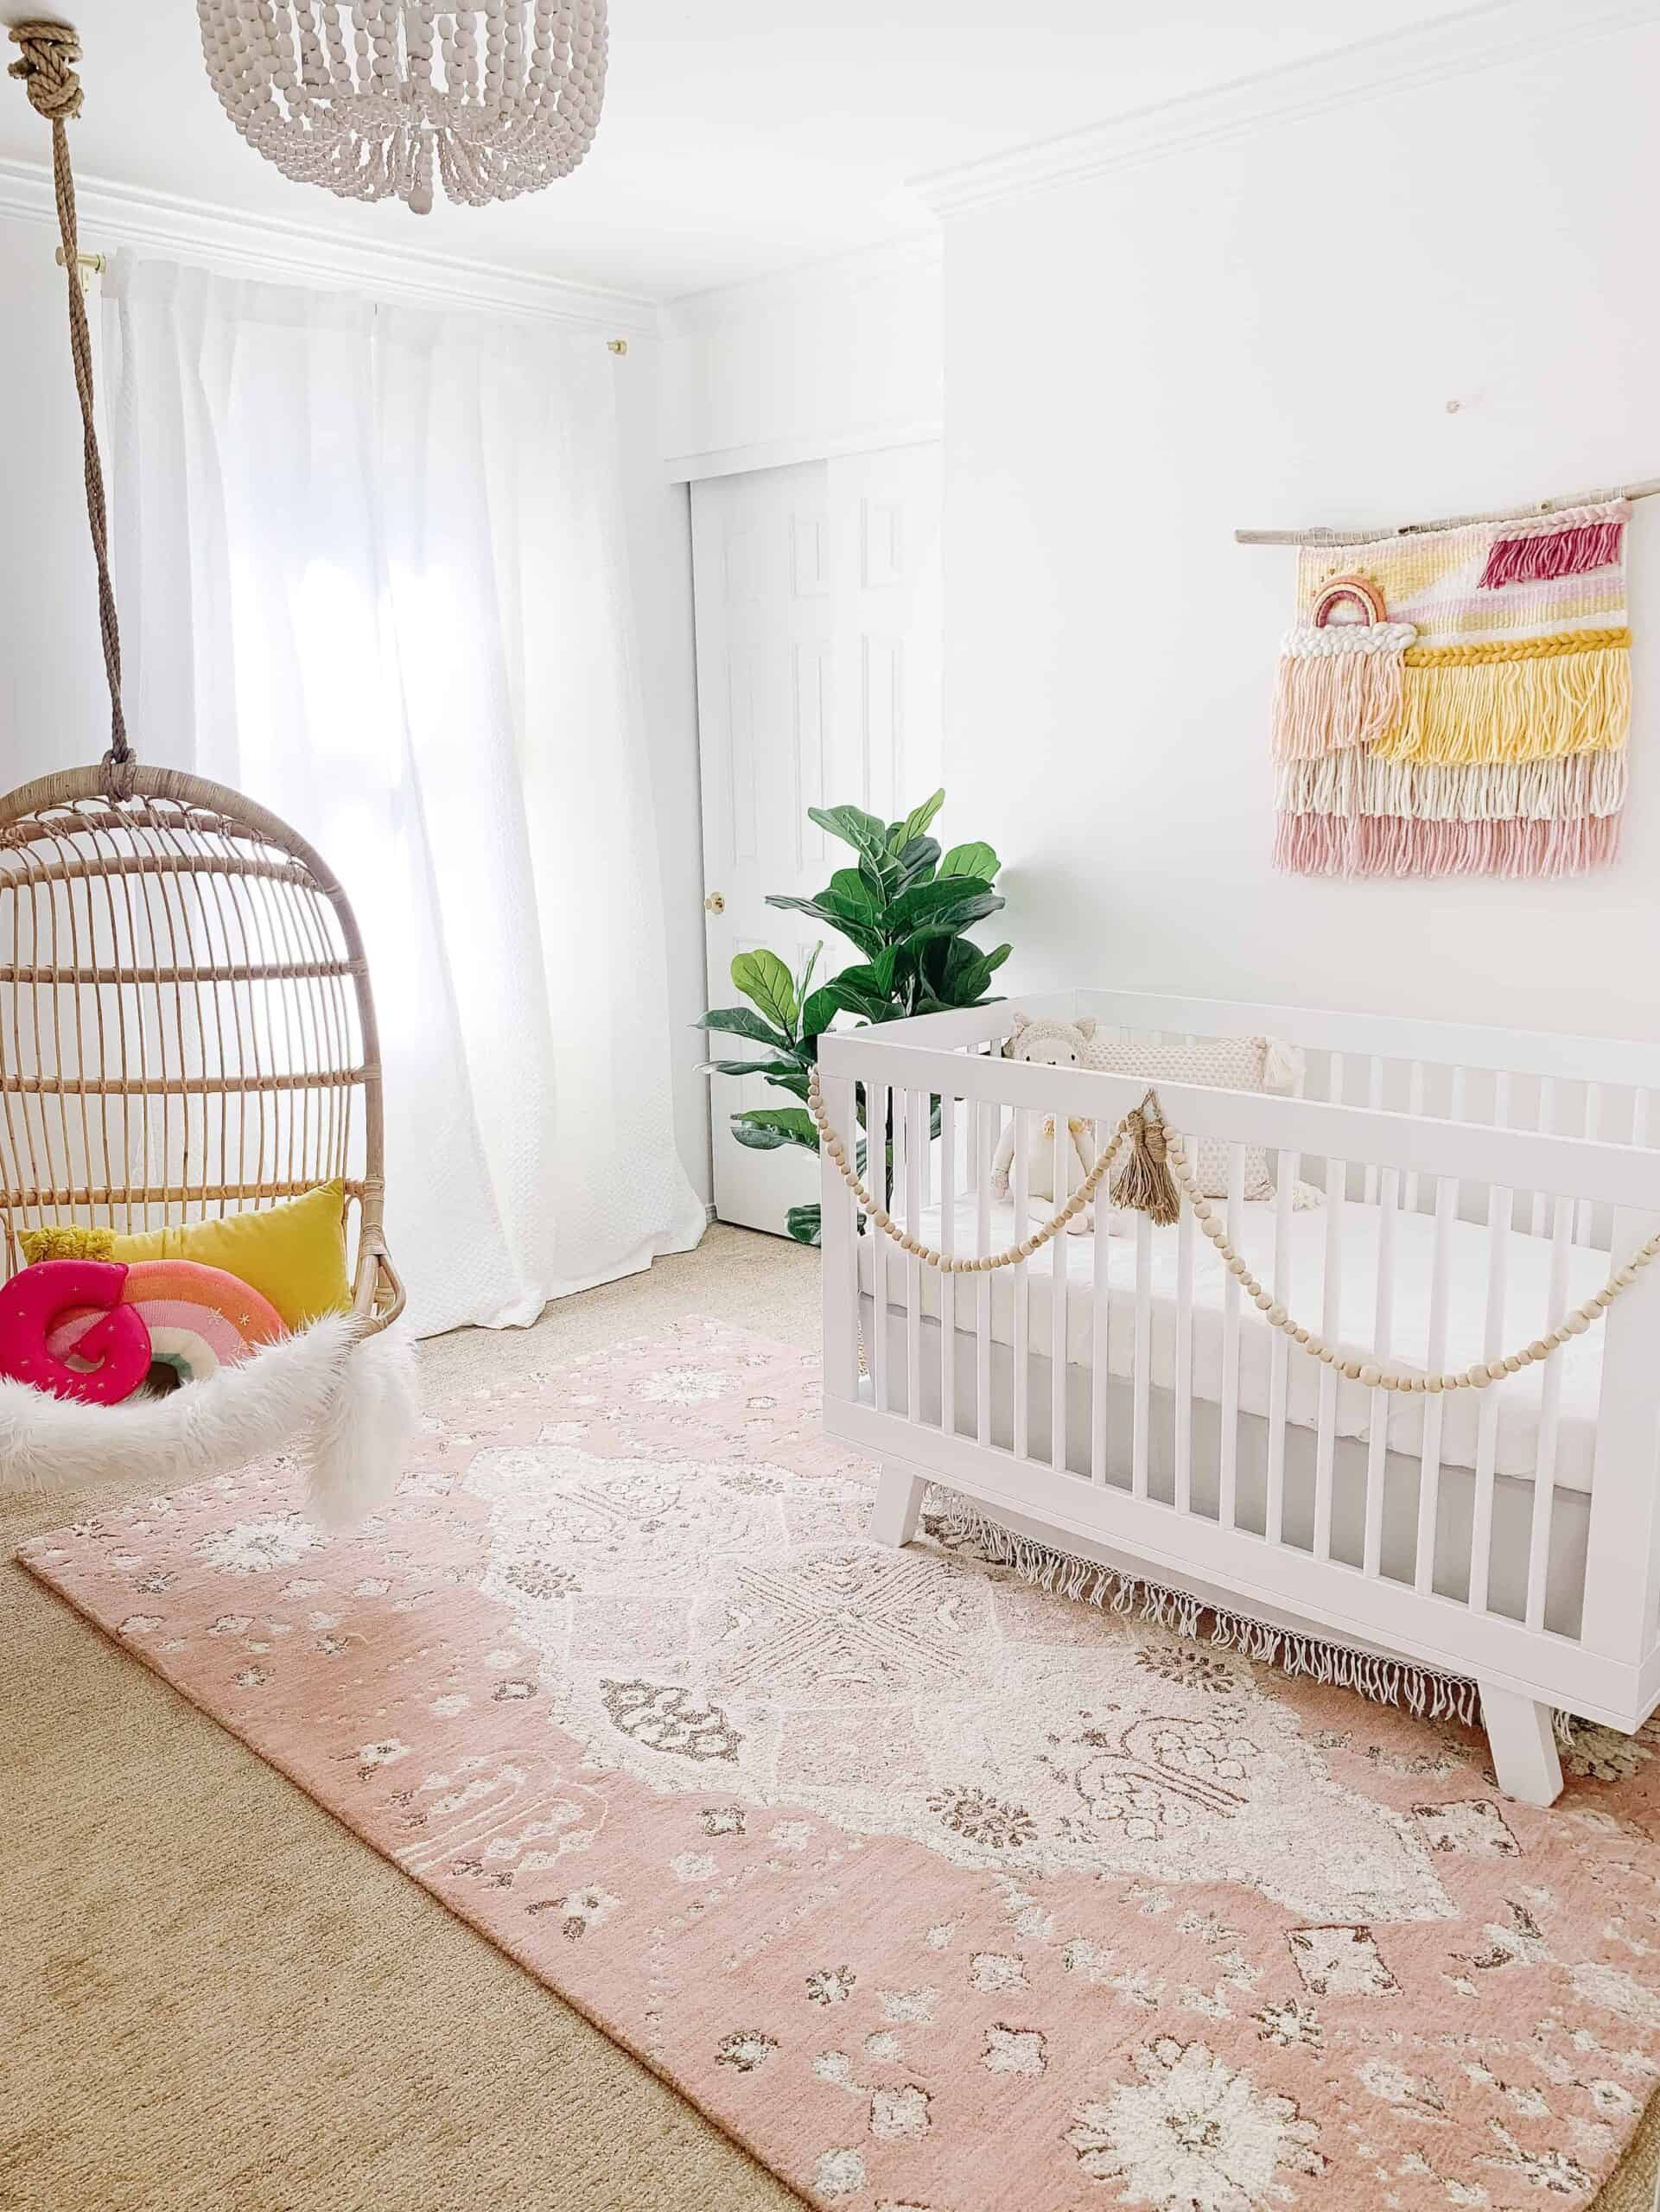 nursery with hanging chair from Serena and Lily